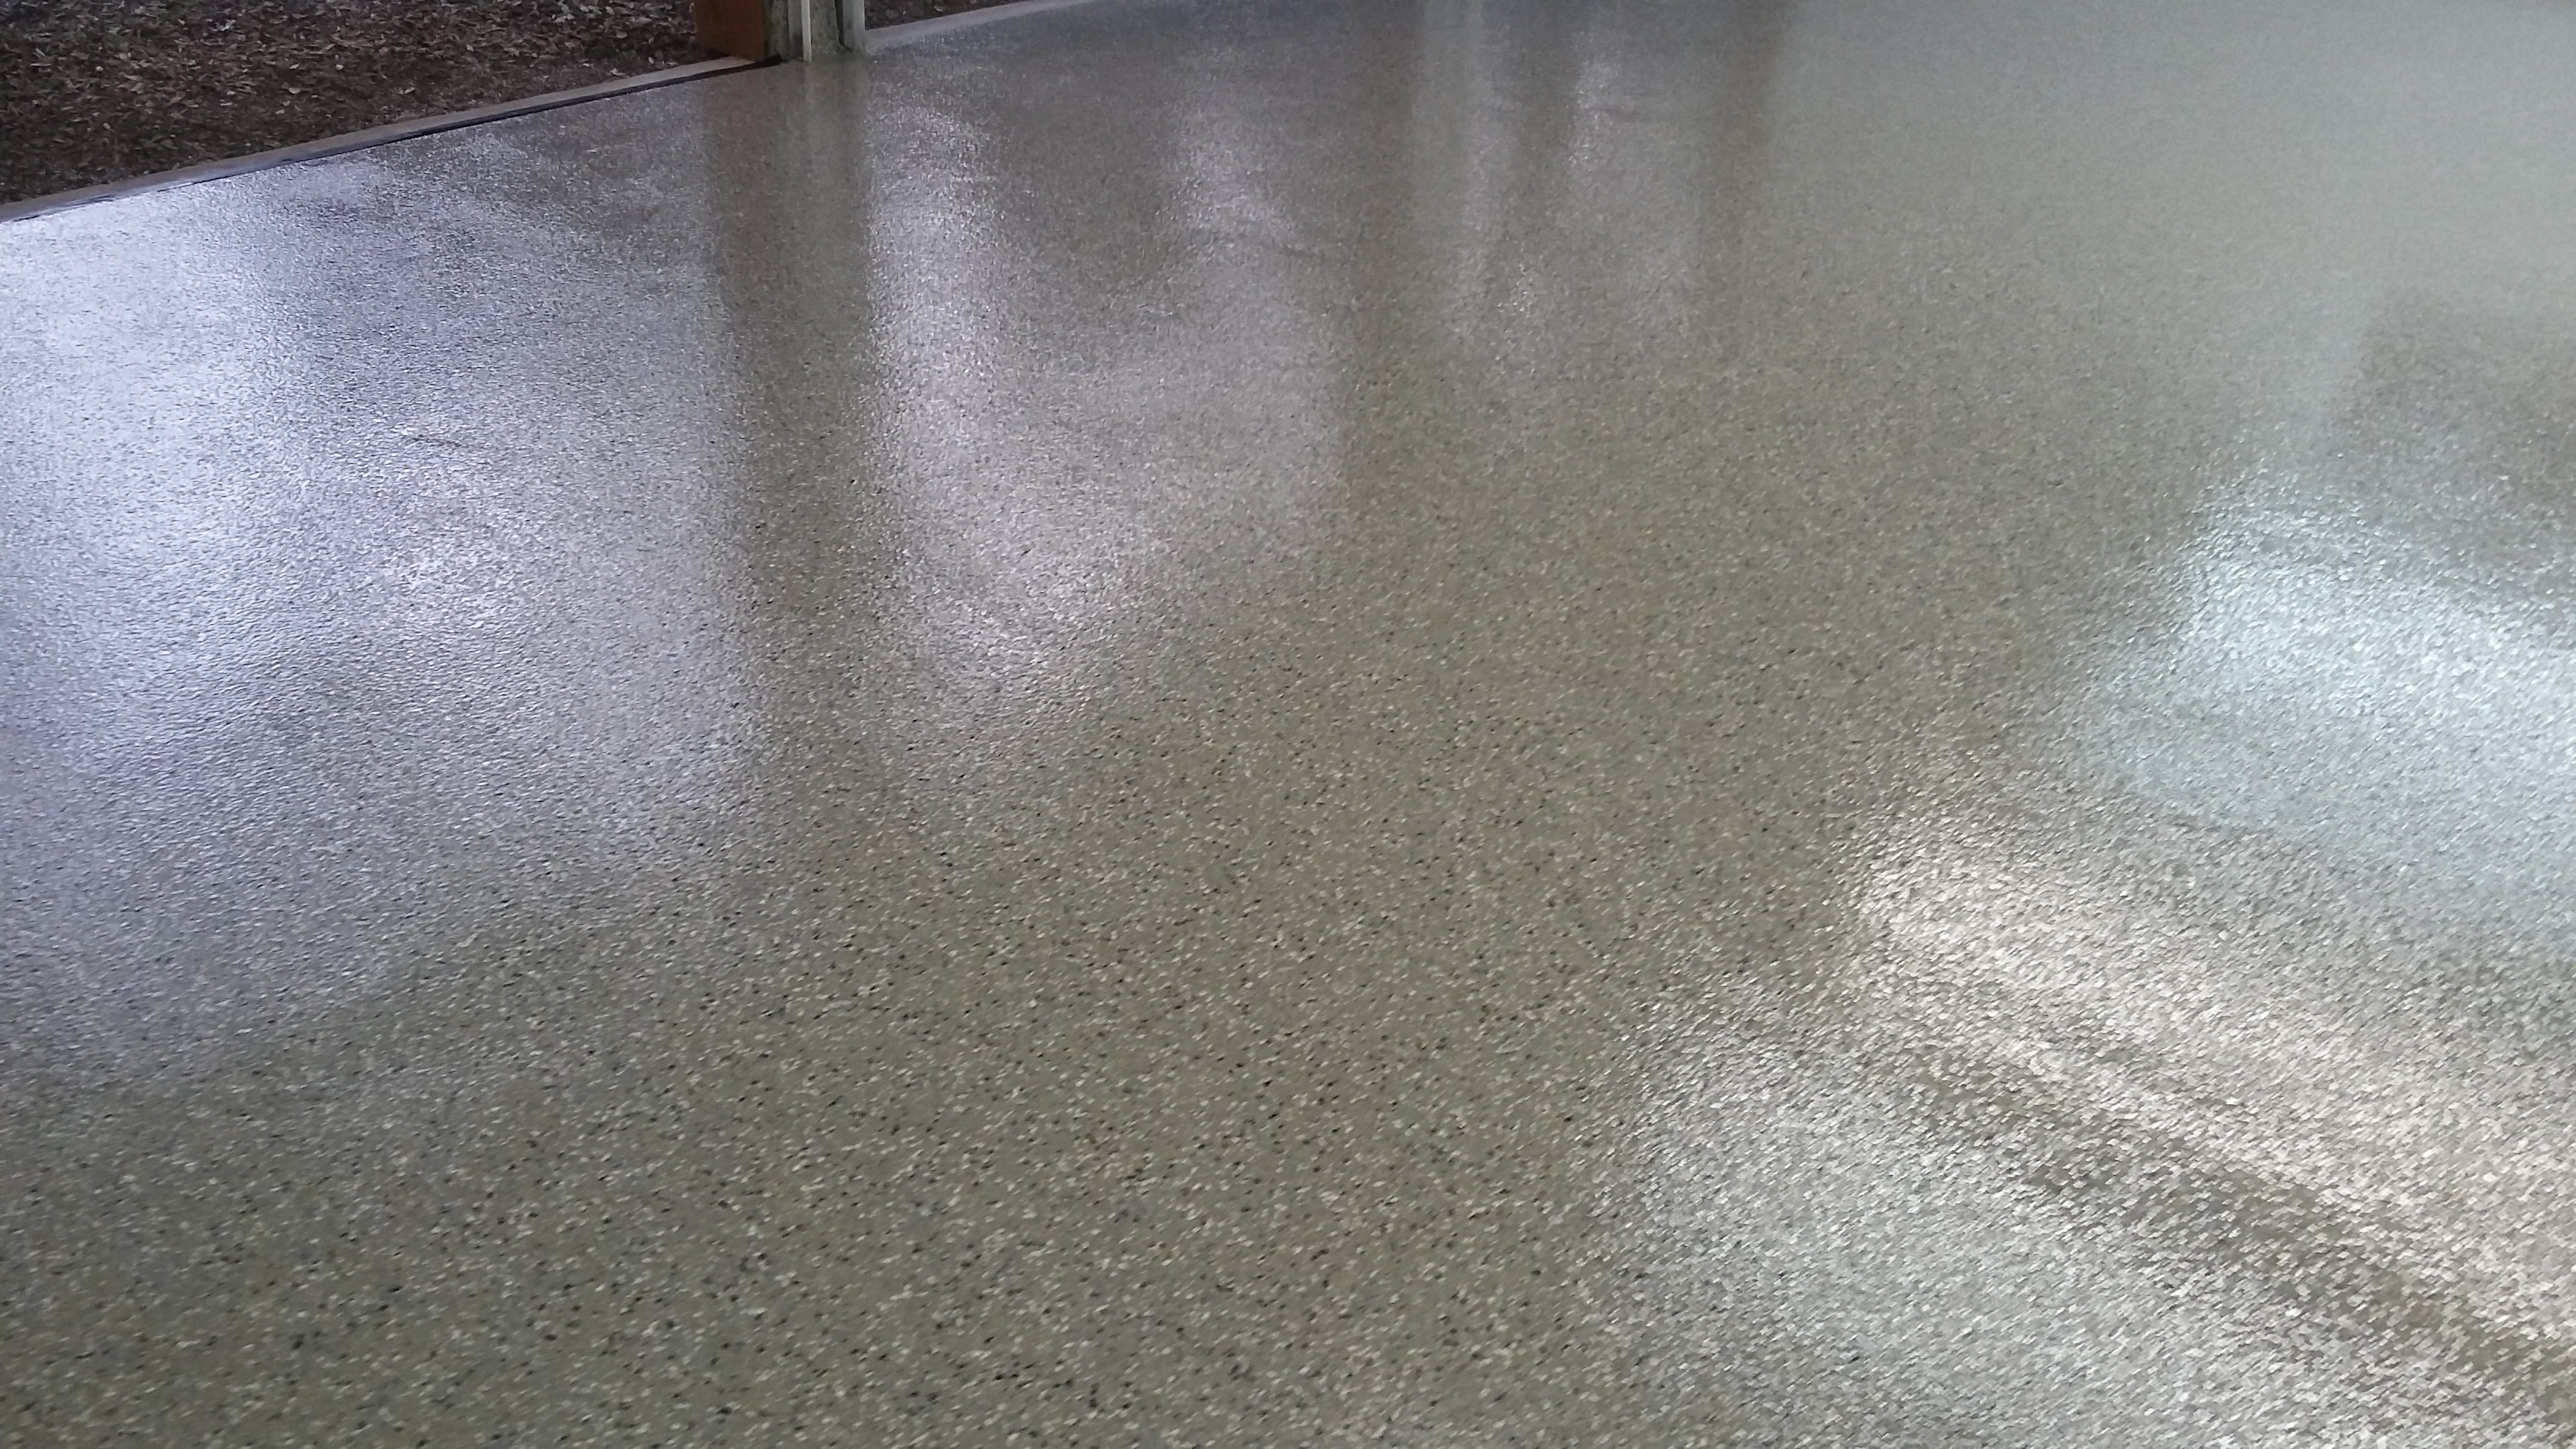 Earth Flake garage floor system ca-resurfacing.com